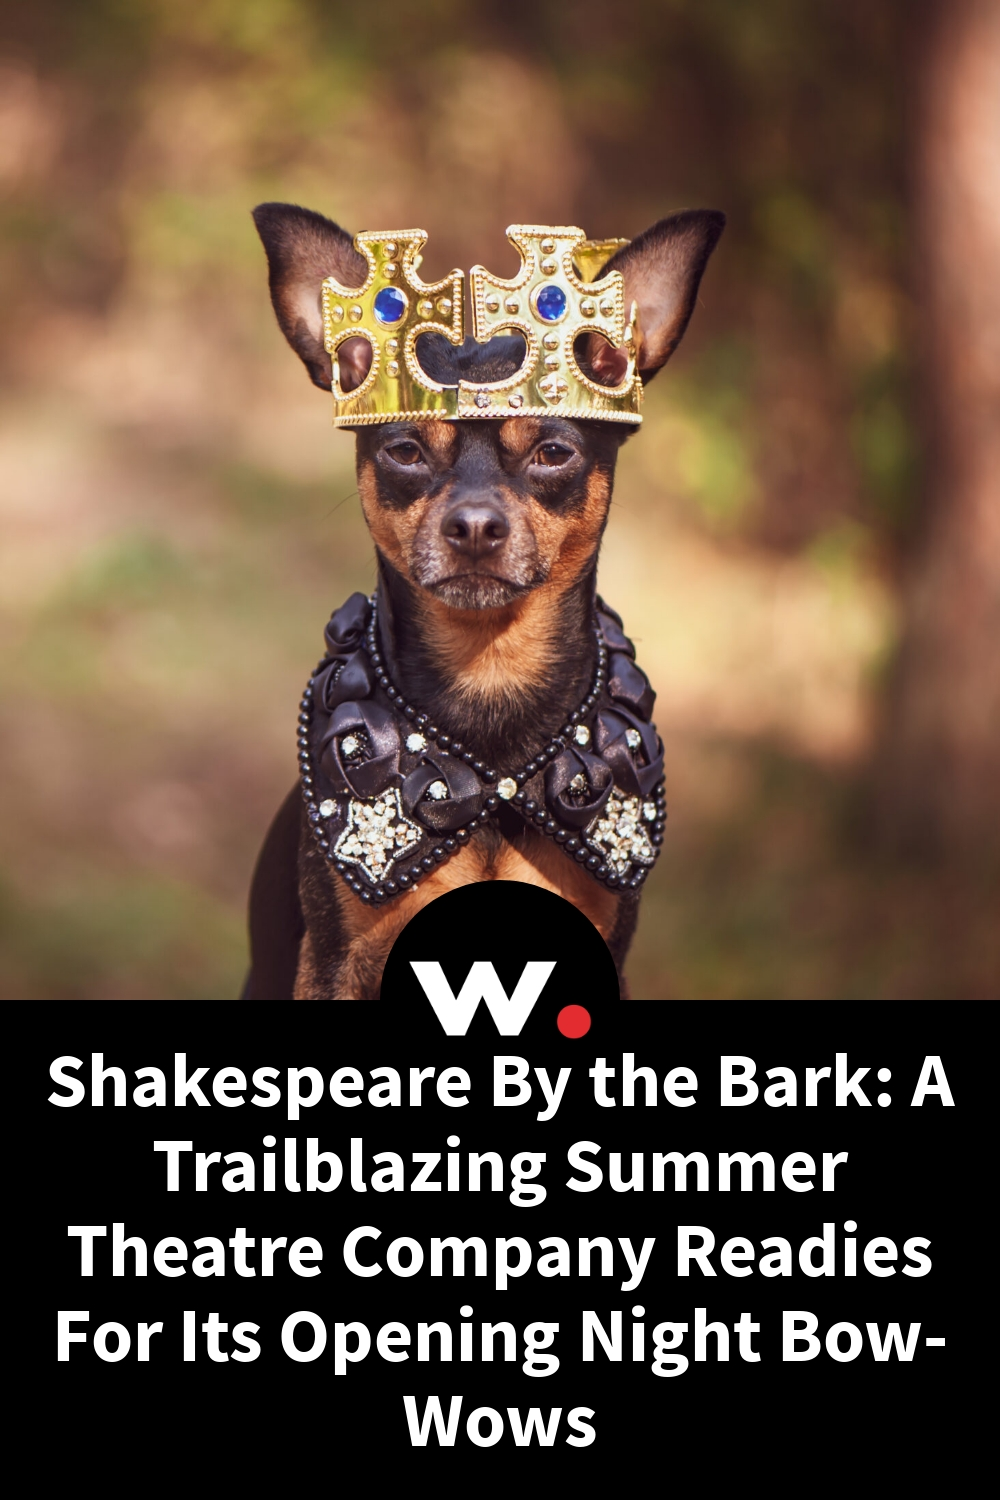 Shakespeare By the Bark: A Trailblazing Summer Theatre Company Readies For Its Opening Night Bow-Wows